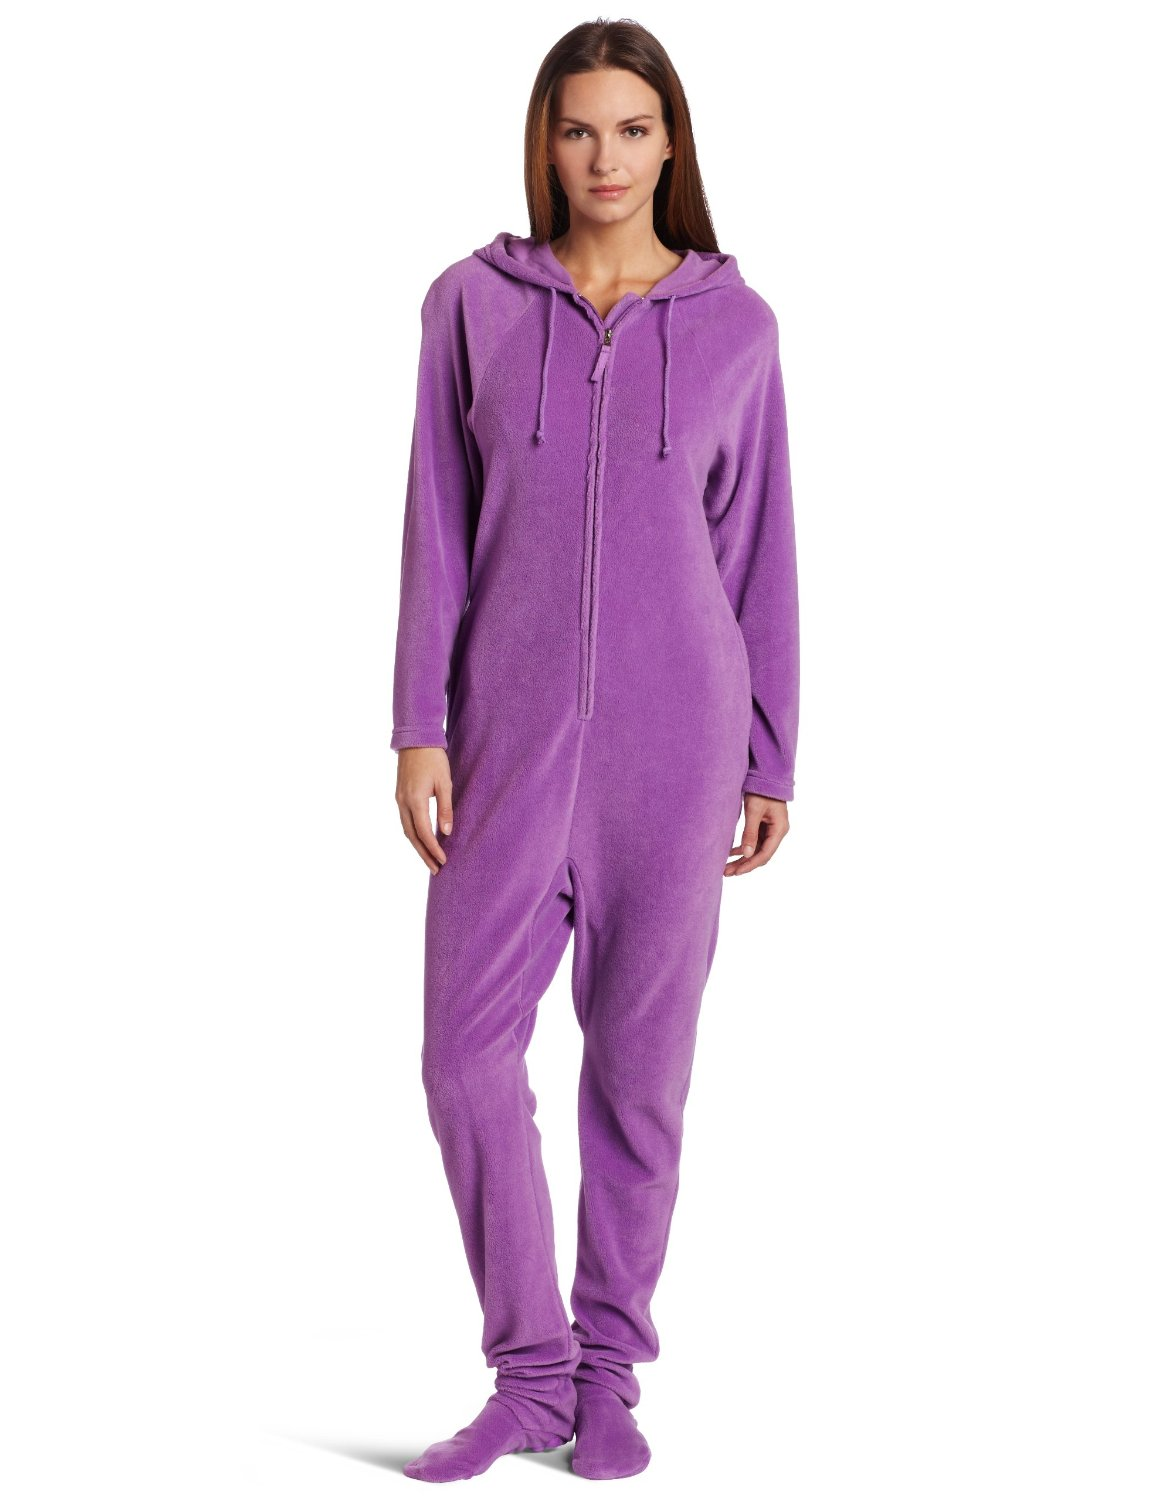 Introducing Forever Lazy Robes. Shop Robes. Get Lazy. Get Lazy See our wide variety of non-footed and footed onesie pajamas for men and women! Personalize Onesies. Embroider your onesies with text or your own art Learn More. Learn More. 1 year on Returns. That's right, days to .